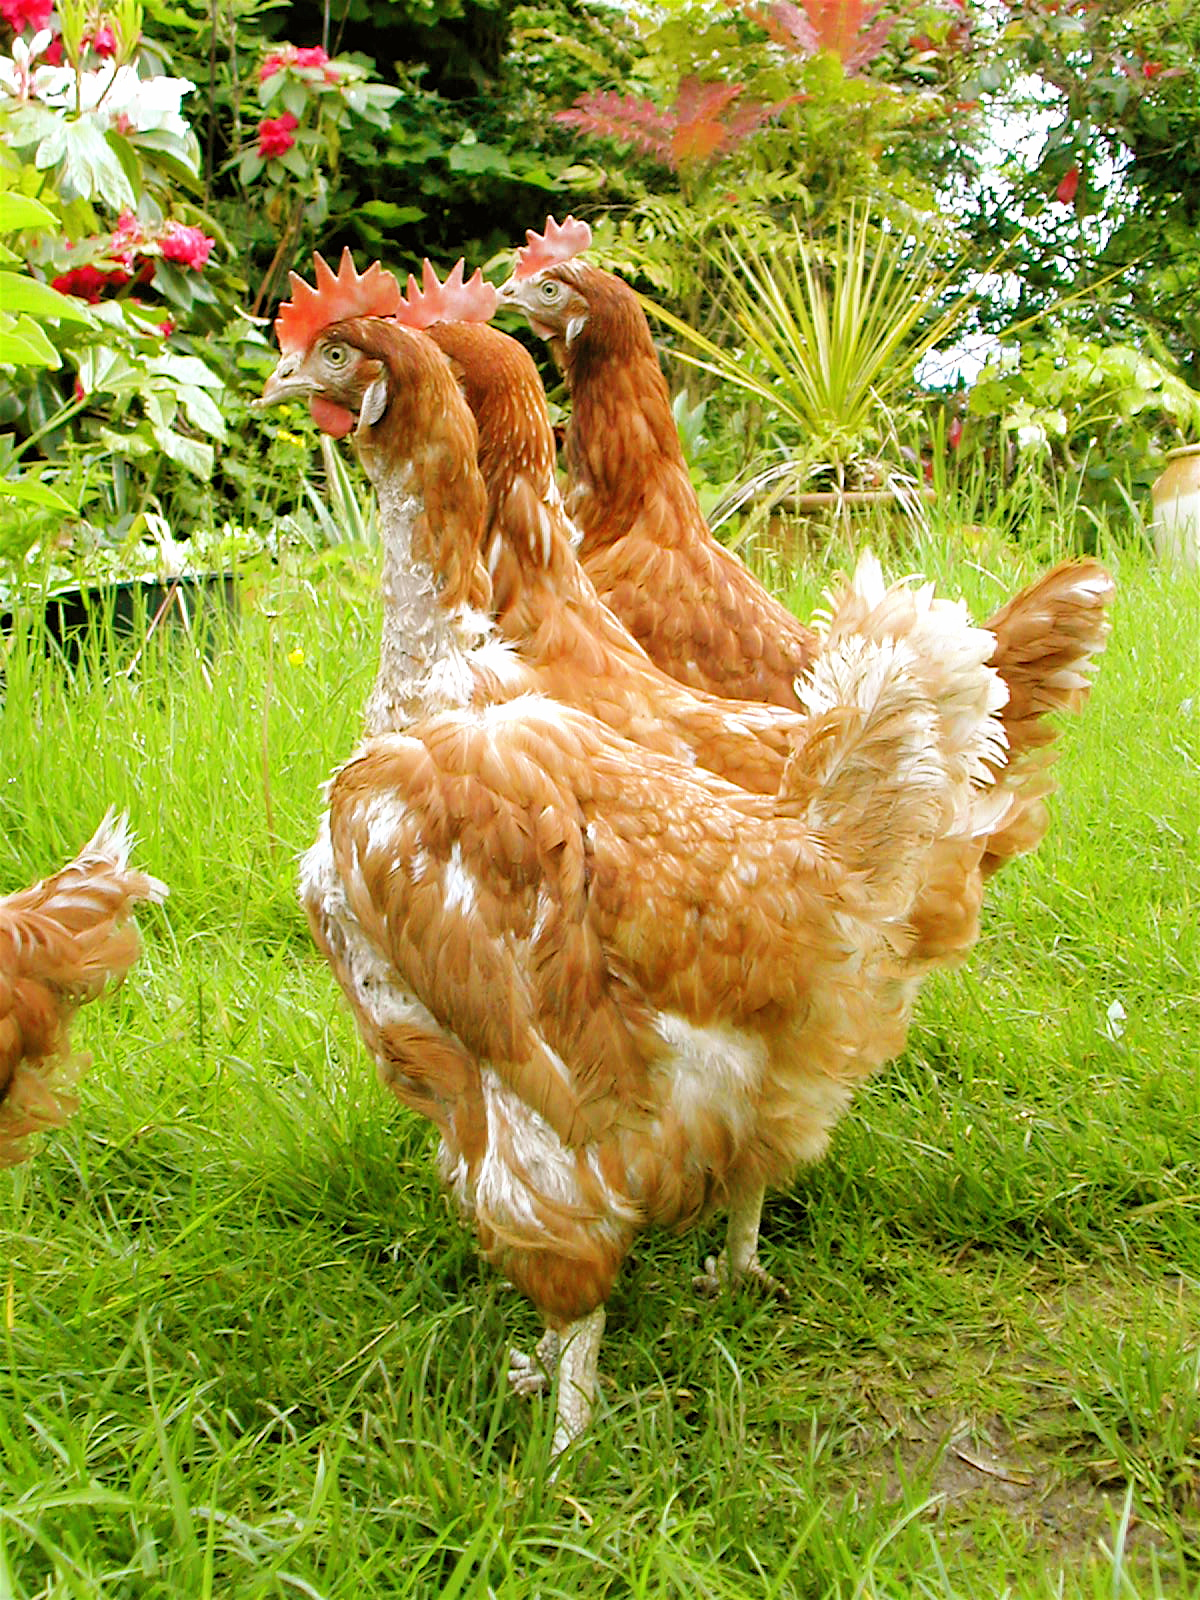 Three moulting chickens roaming around the garden in search for some tasty worms